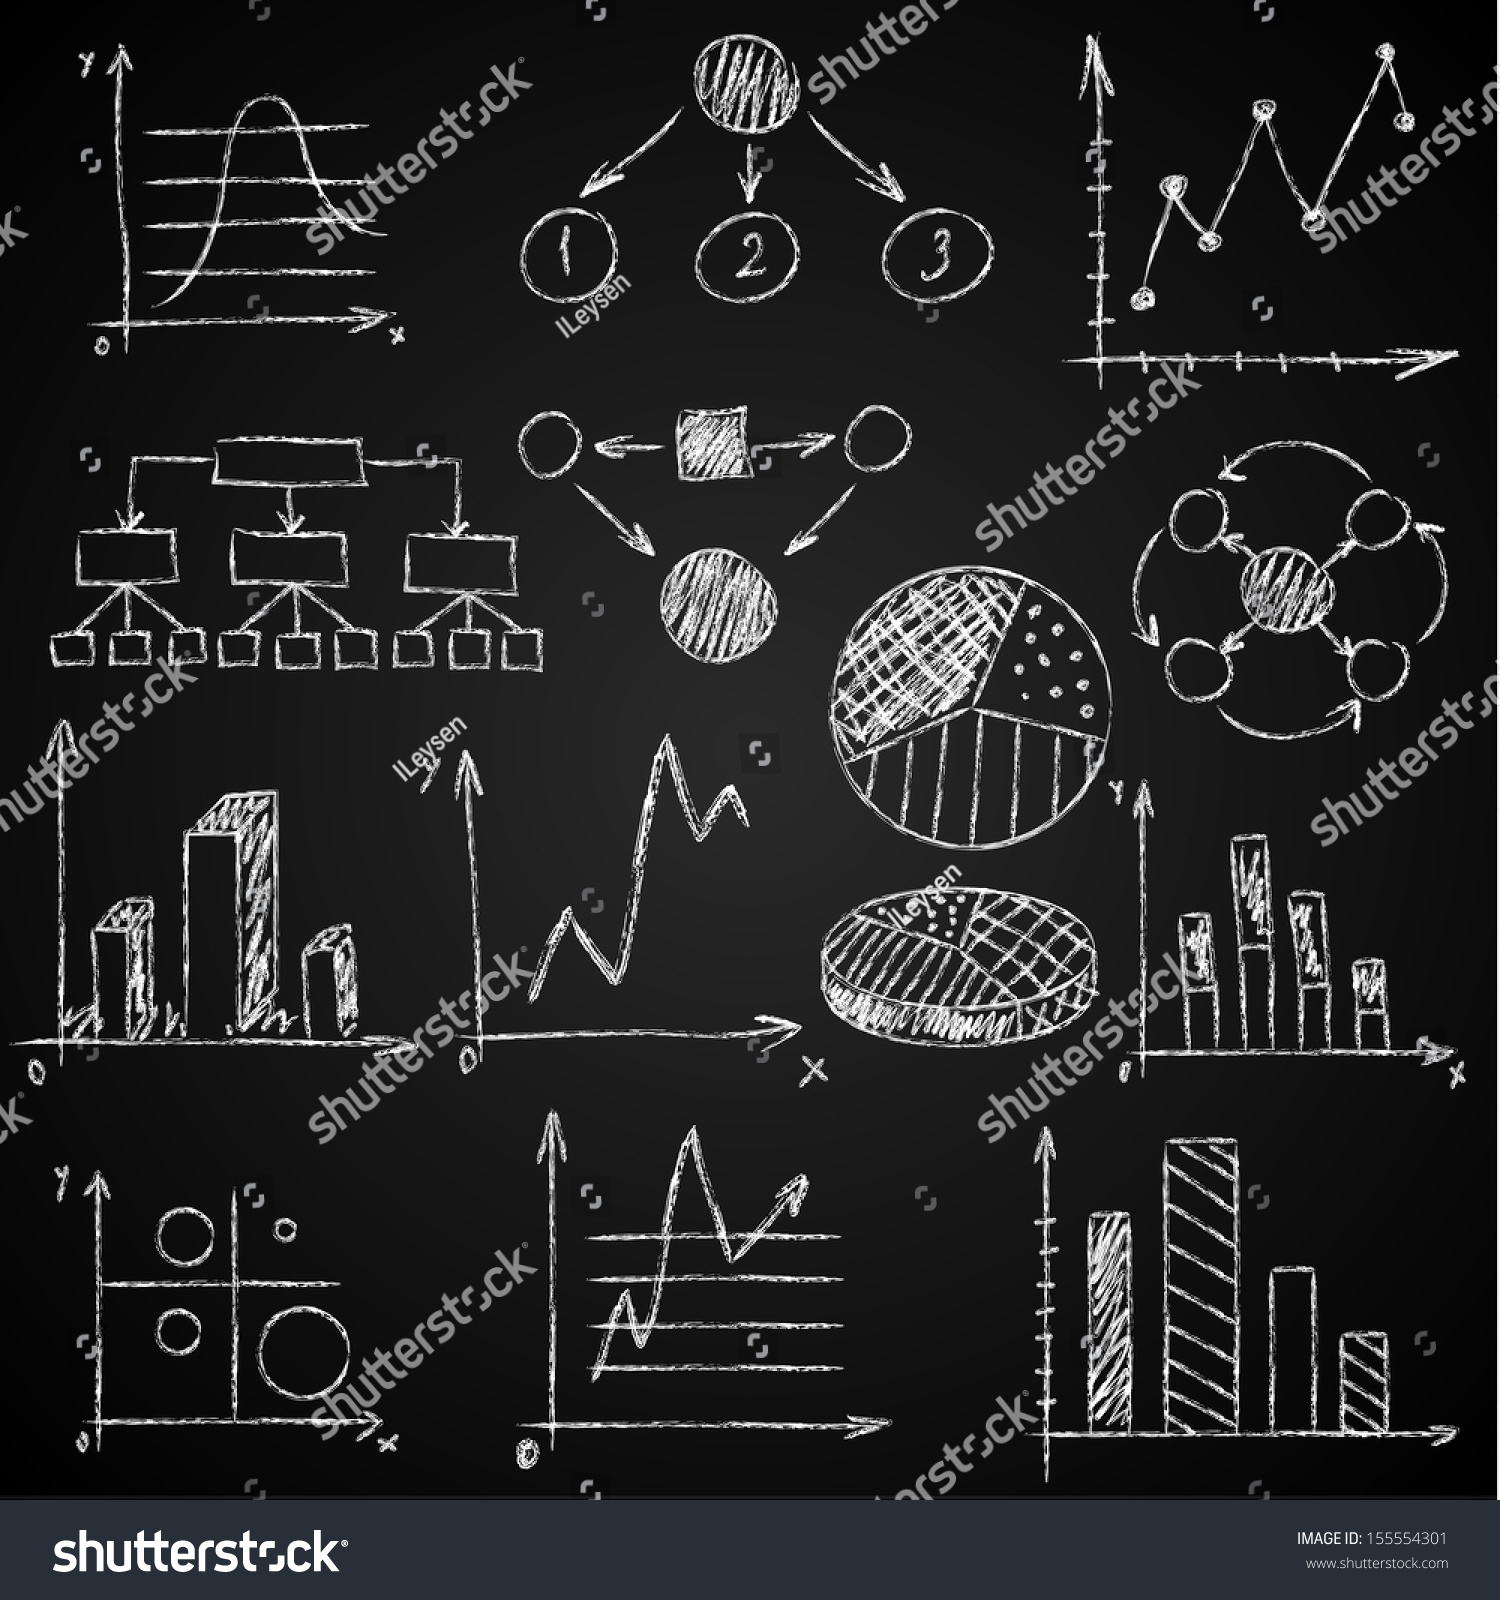 Handdrawn Diagrams On Blackboard Background Stock Vector